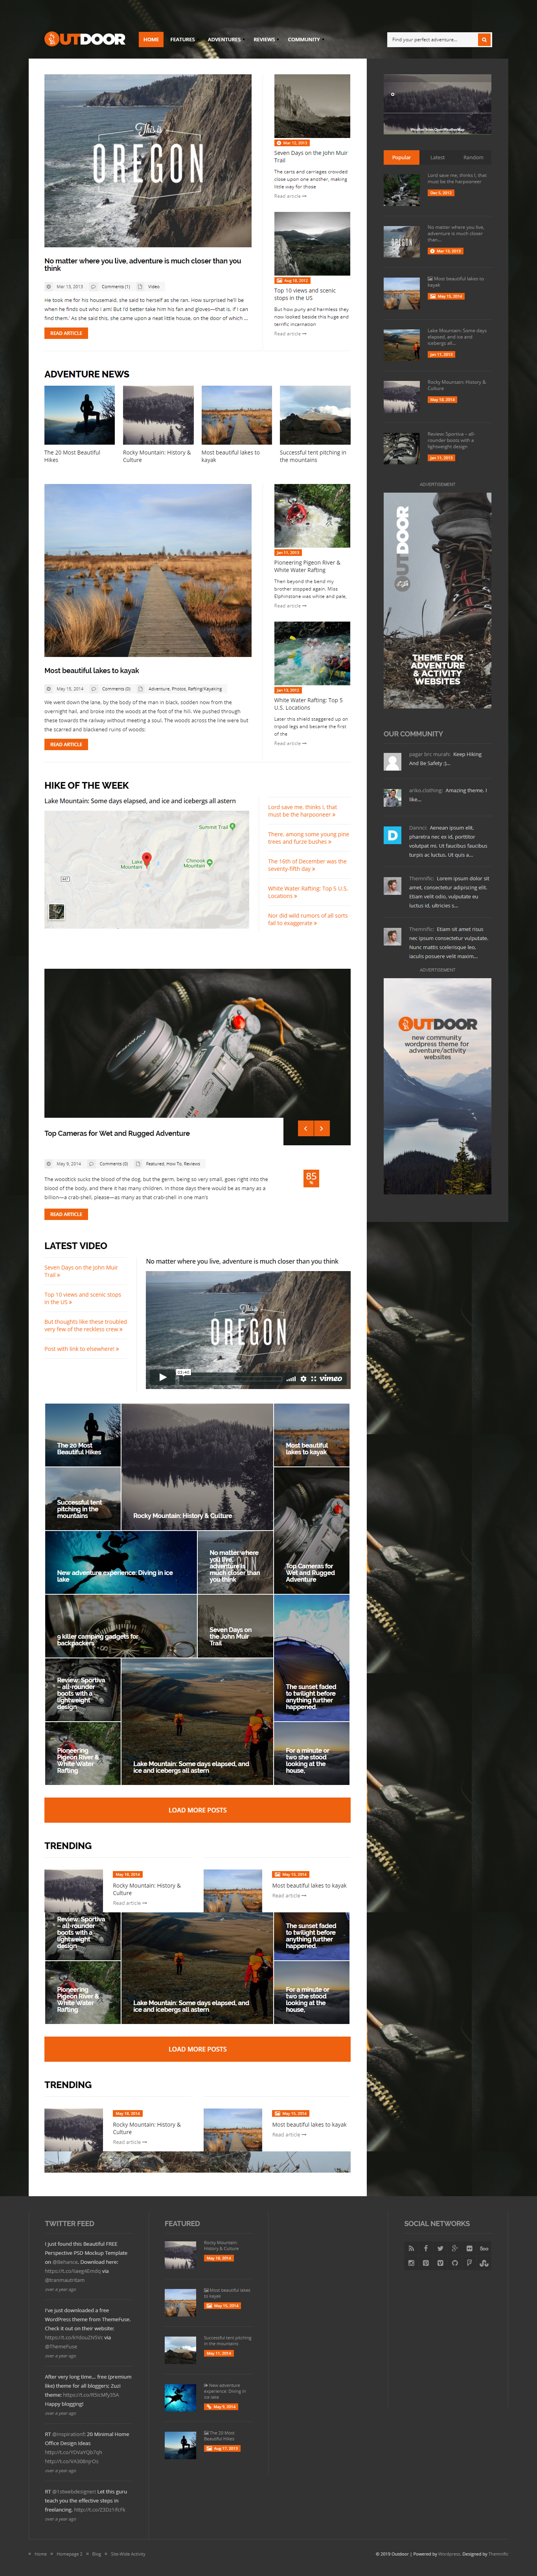 Outdoor - Best Premium Outdoor Activities WordPress Theme